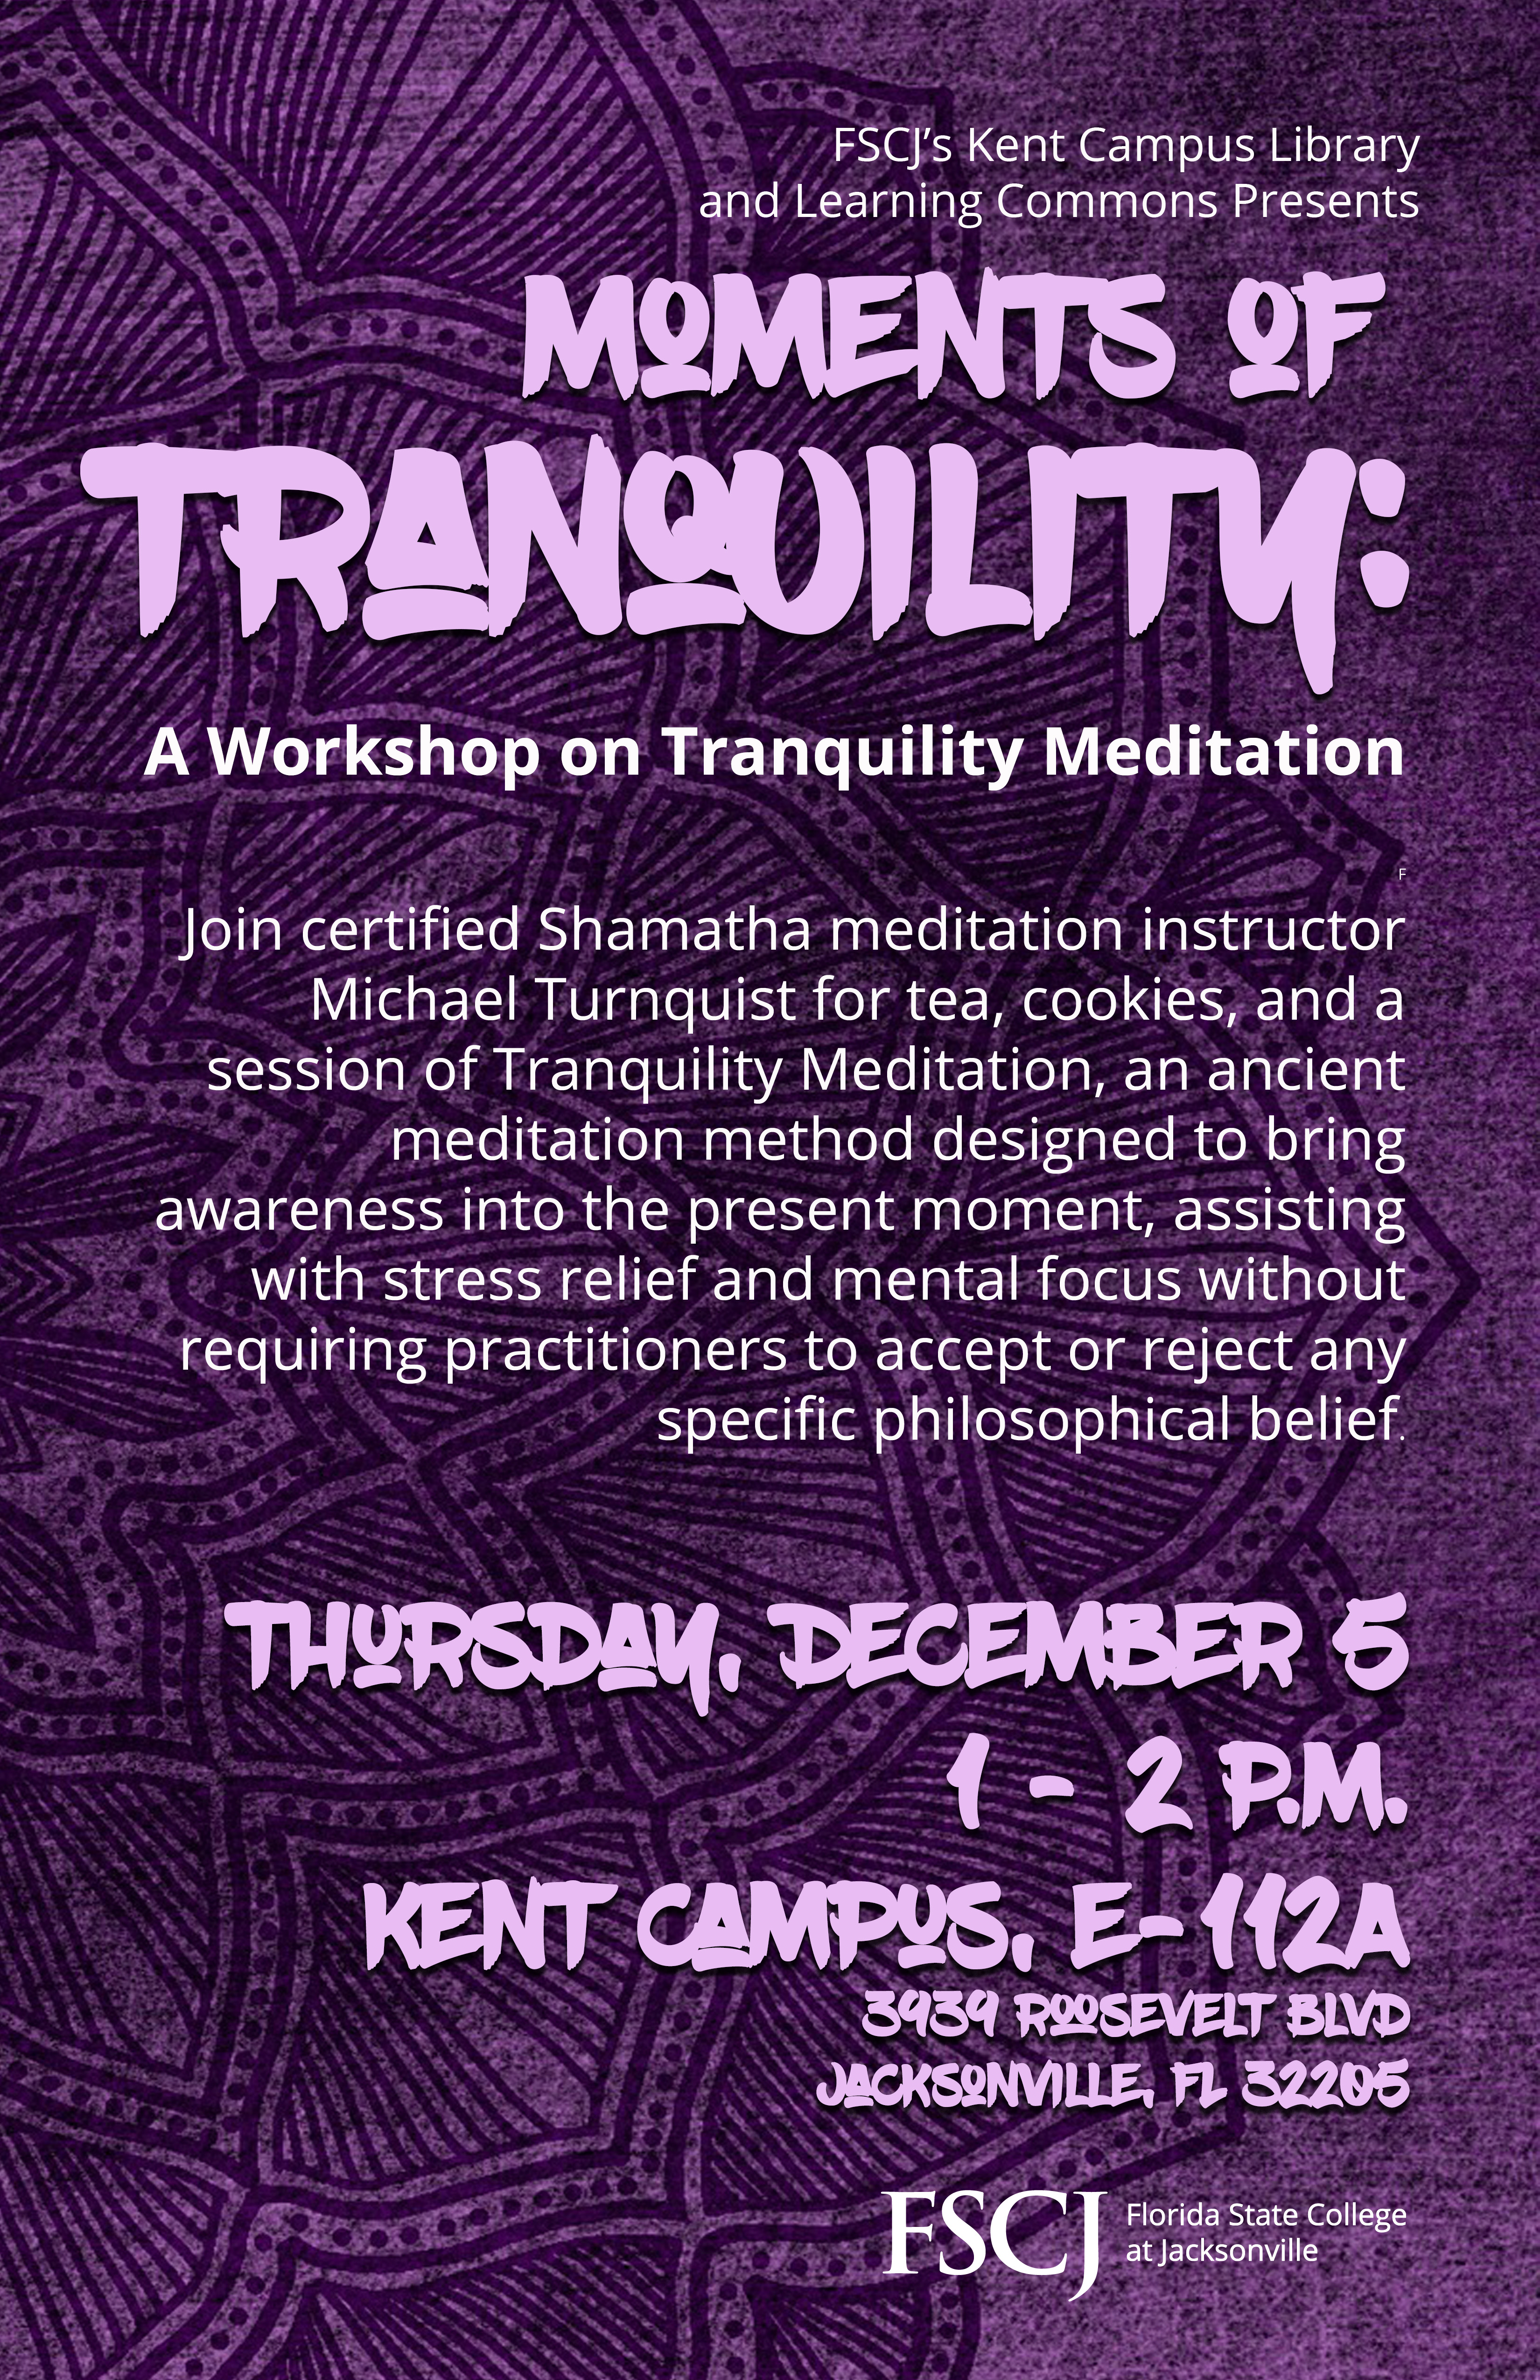 Moments of Tranquility: A Tranquility Meditation Workshop